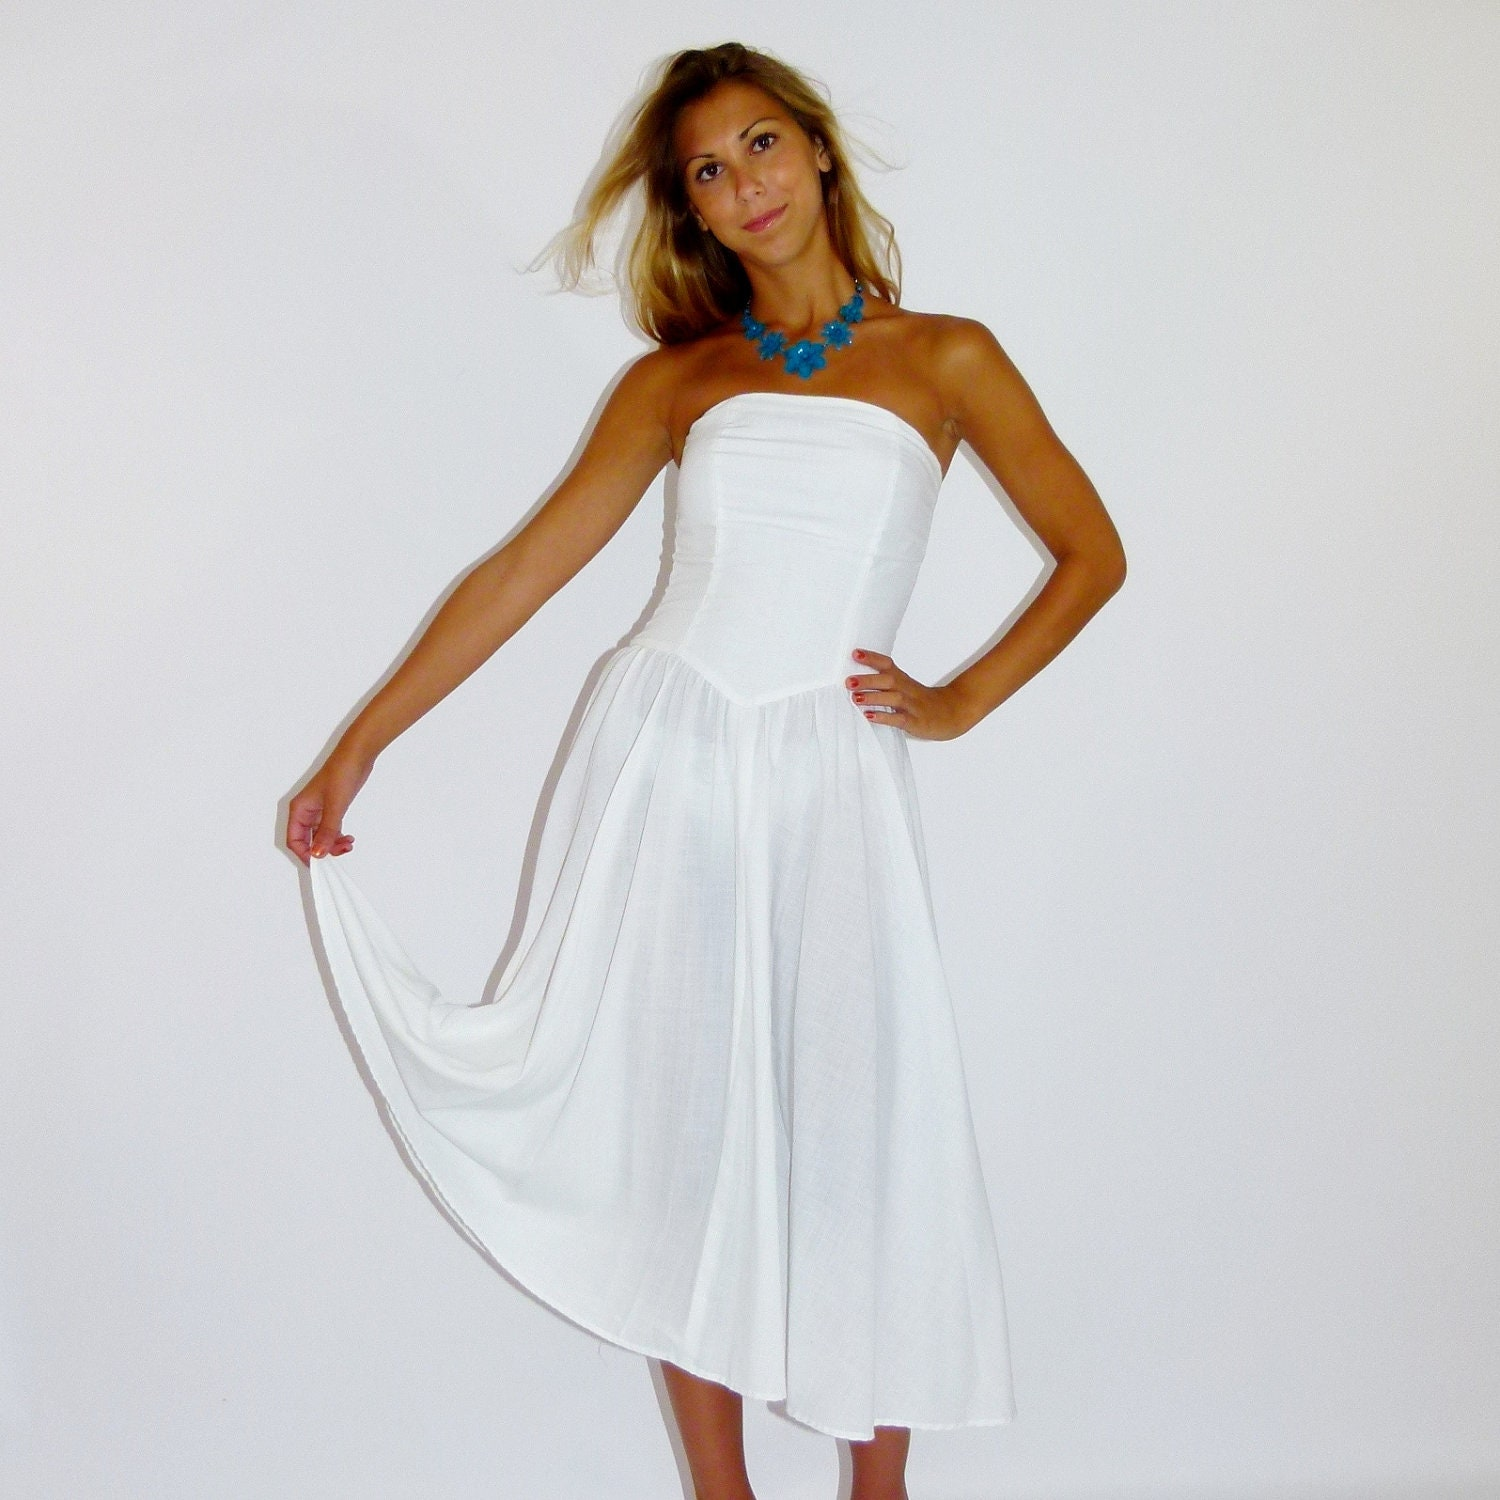 Casual White Cotton Wedding Slip Dresses 66